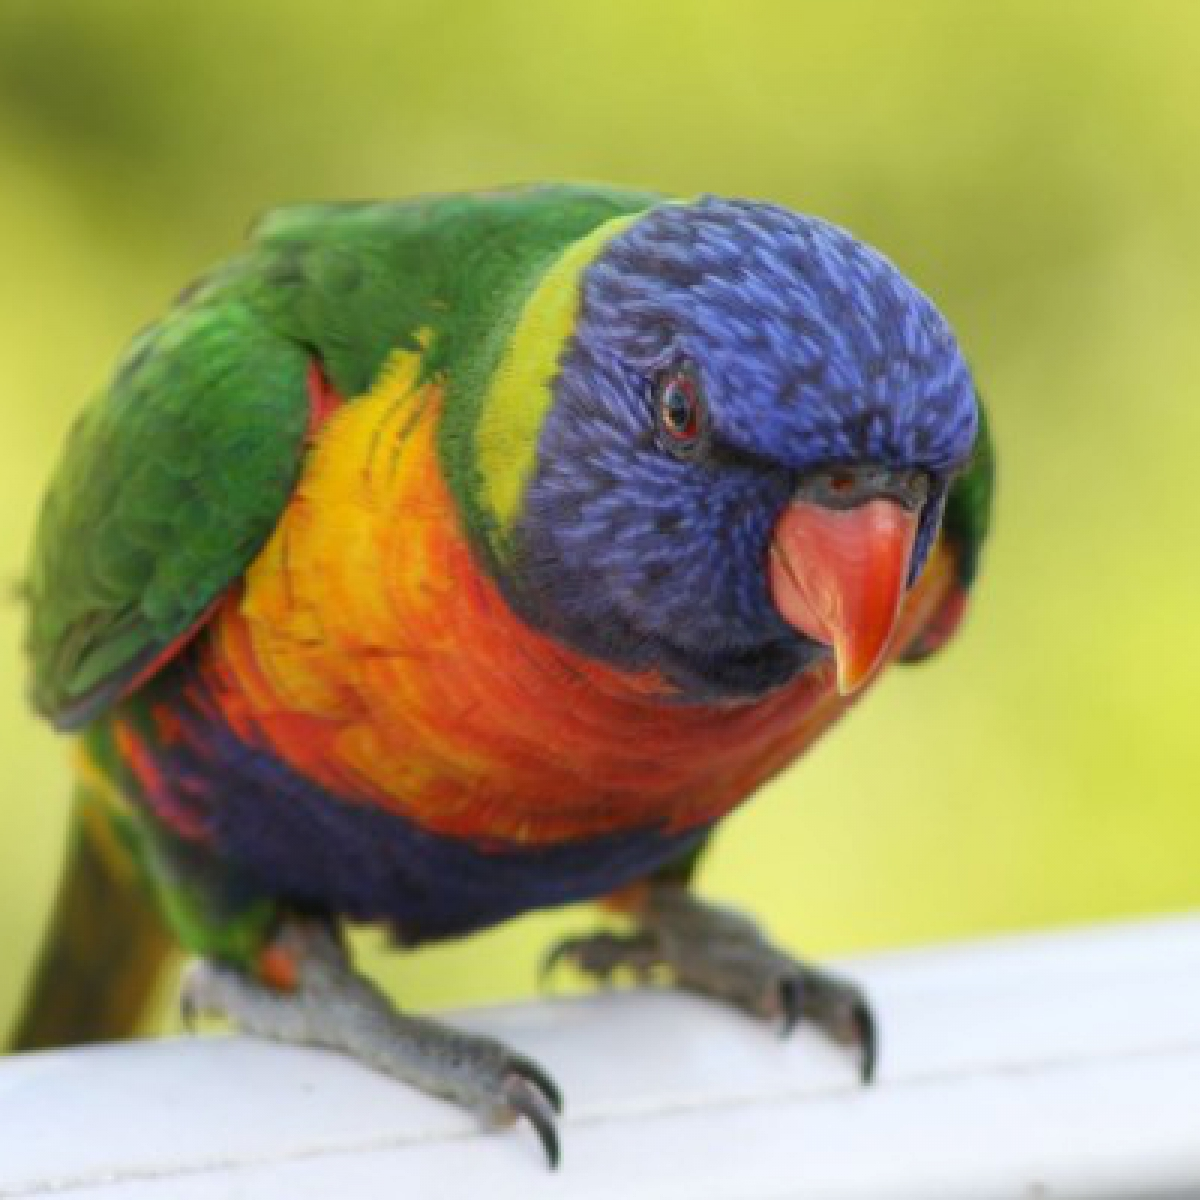 461 Rainbow Lorikeet